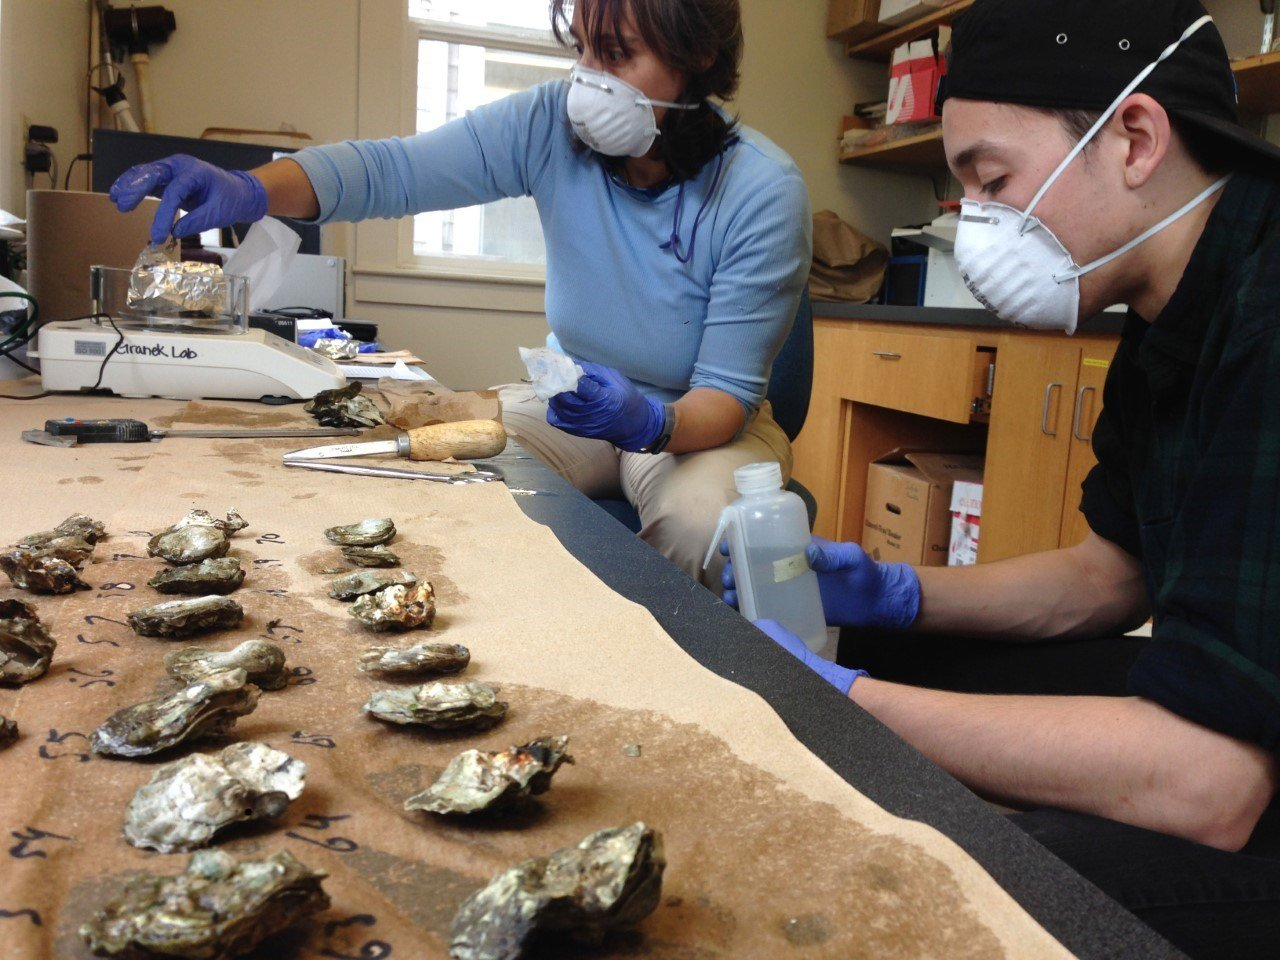 Researchers at PSU studying the Olympia oyster discovered a mixture of chemicals and pharmaceuticals in the specimens. (KPTV)